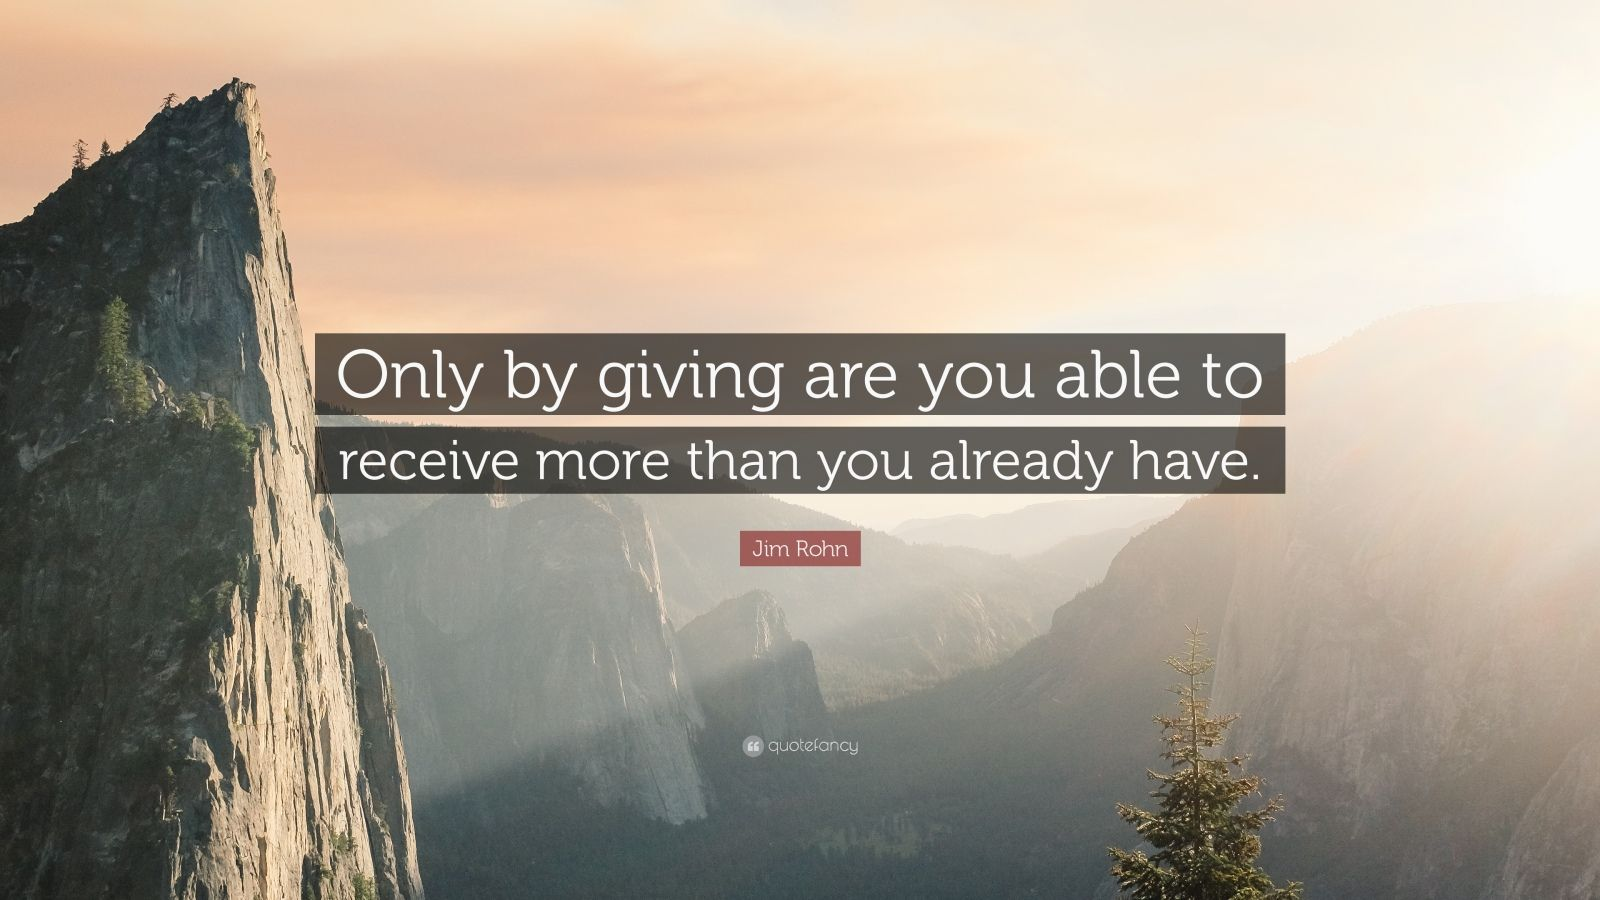 Weekend Wallpapers With Quotes Jim Rohn Quote Only By Giving Are You Able To Receive